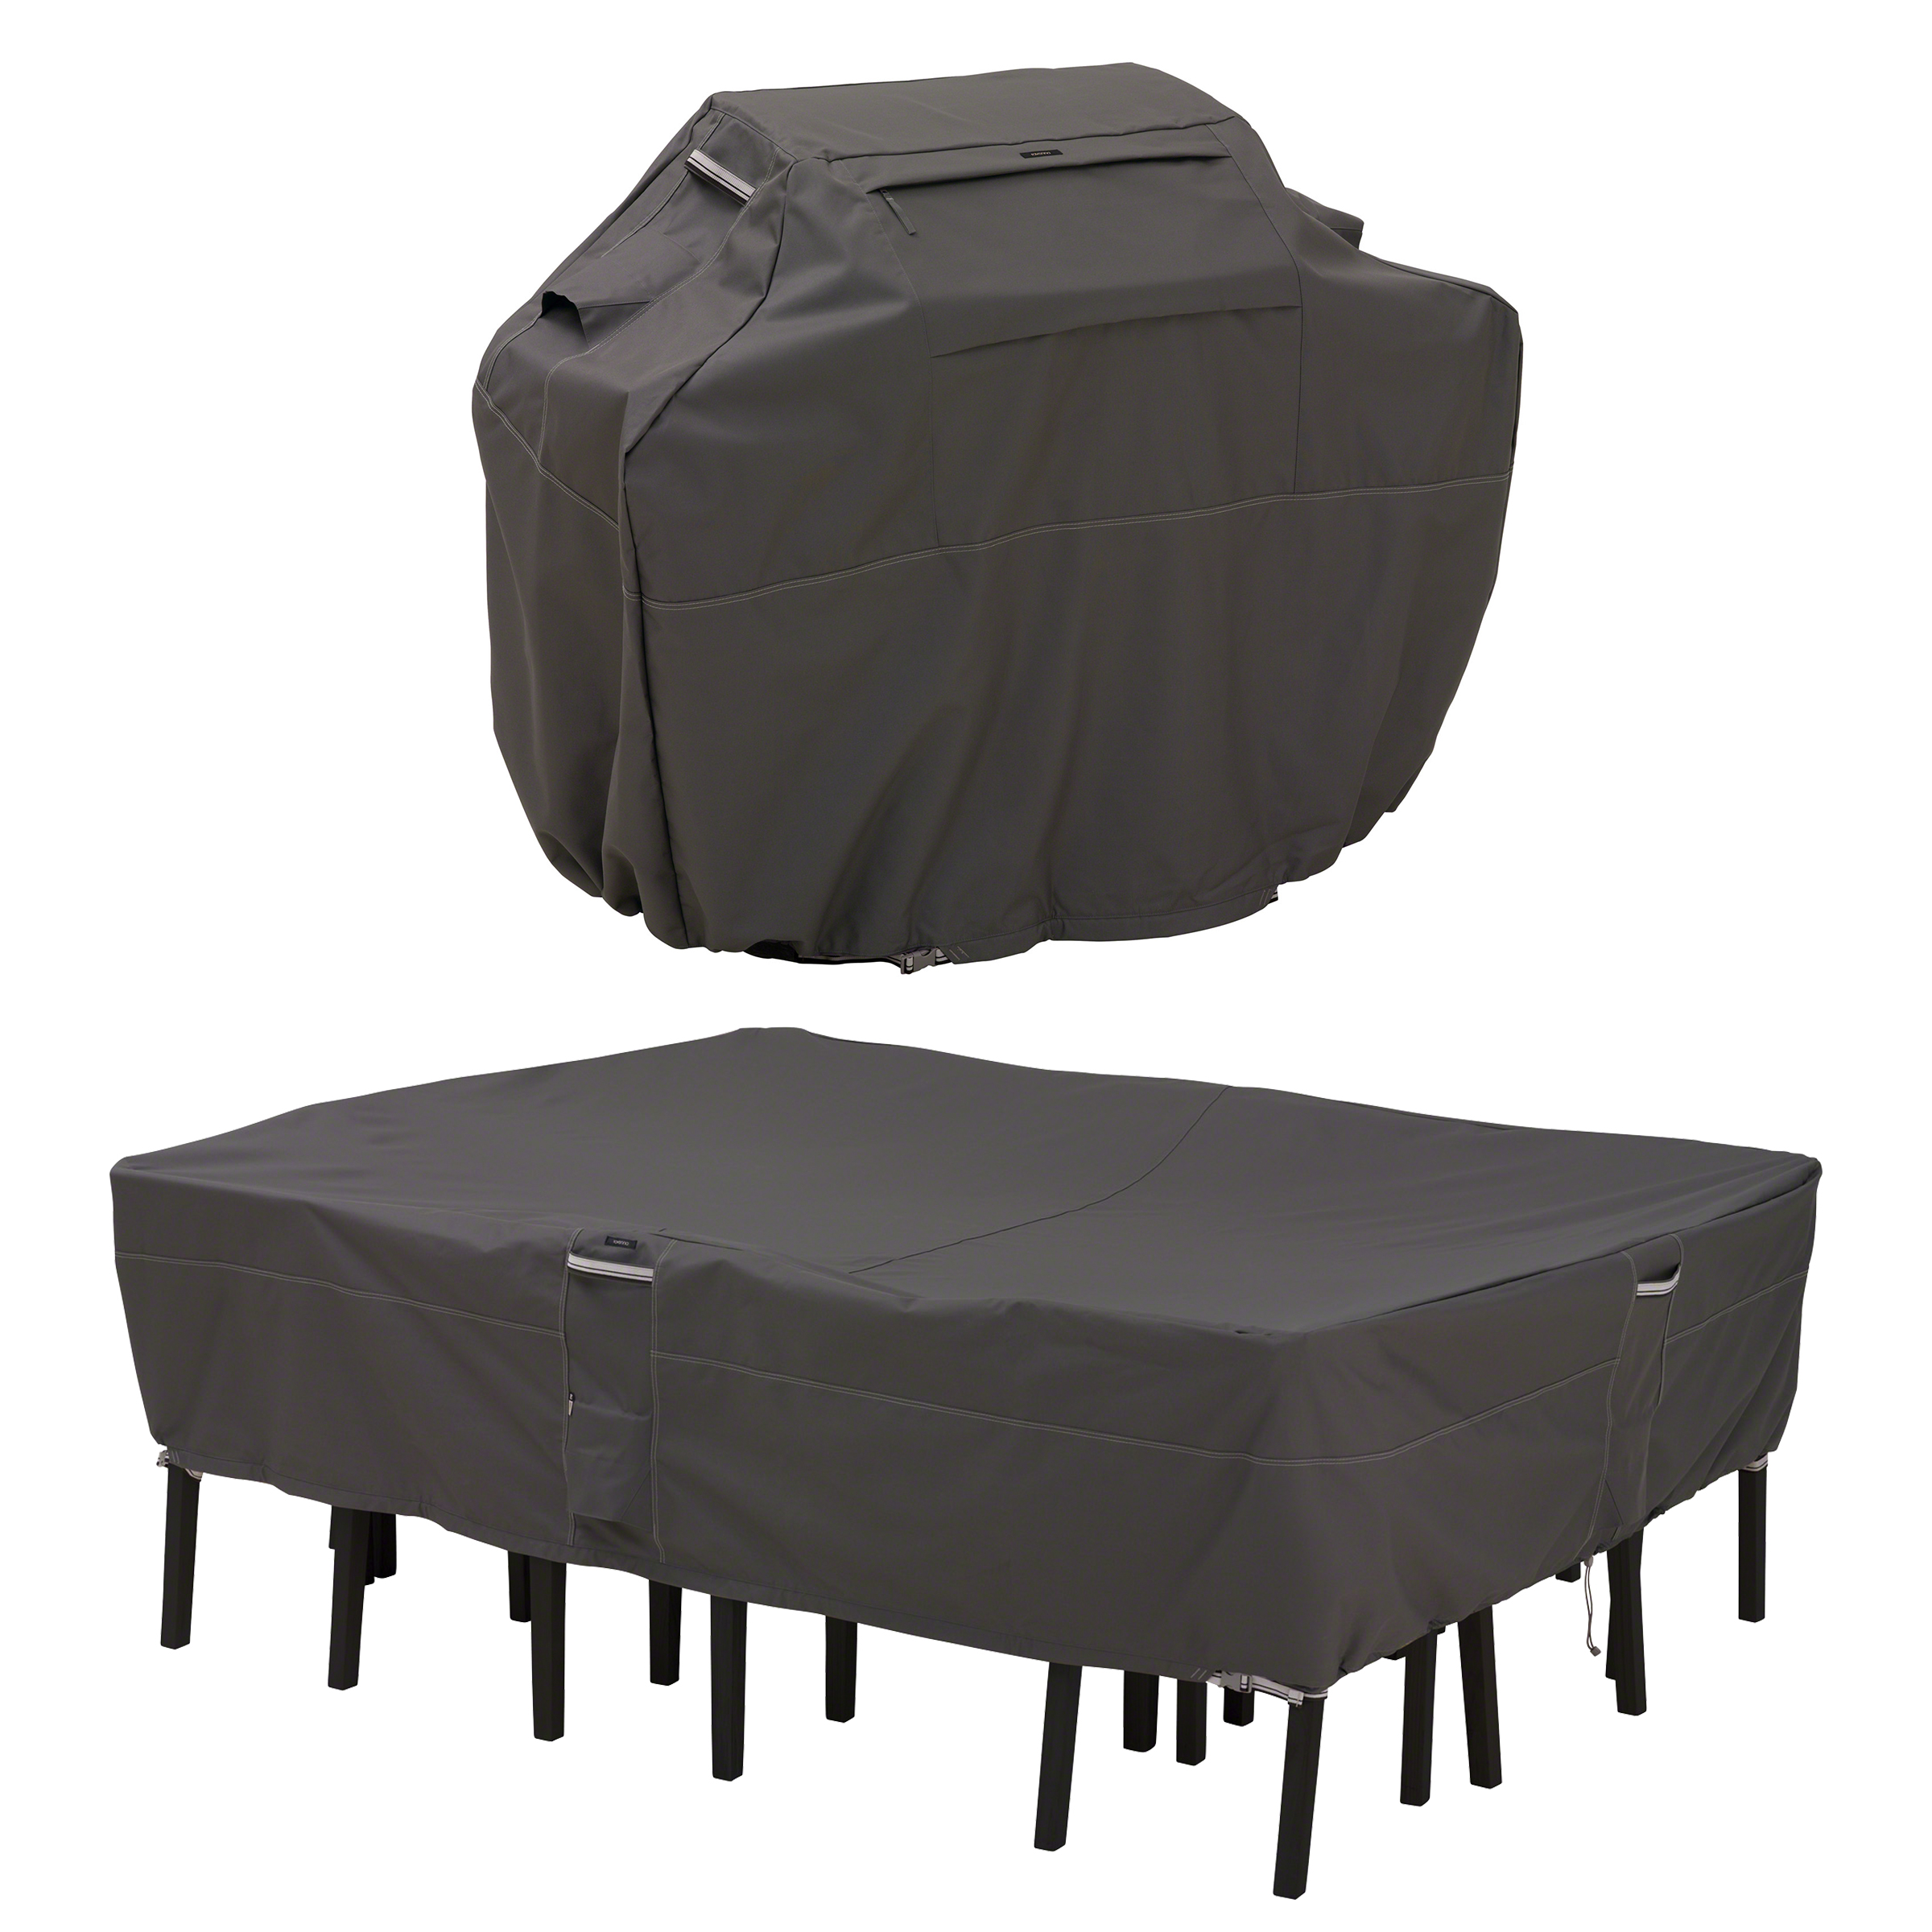 Classic Accessories Ravenna® Medium Grill Cover and Large Rectangular/Oval Patio Table & Chair Set Cover Bundle - Premium Outdoor Covers with Durable Water Resistant Fabric (55-927-035103-EC)